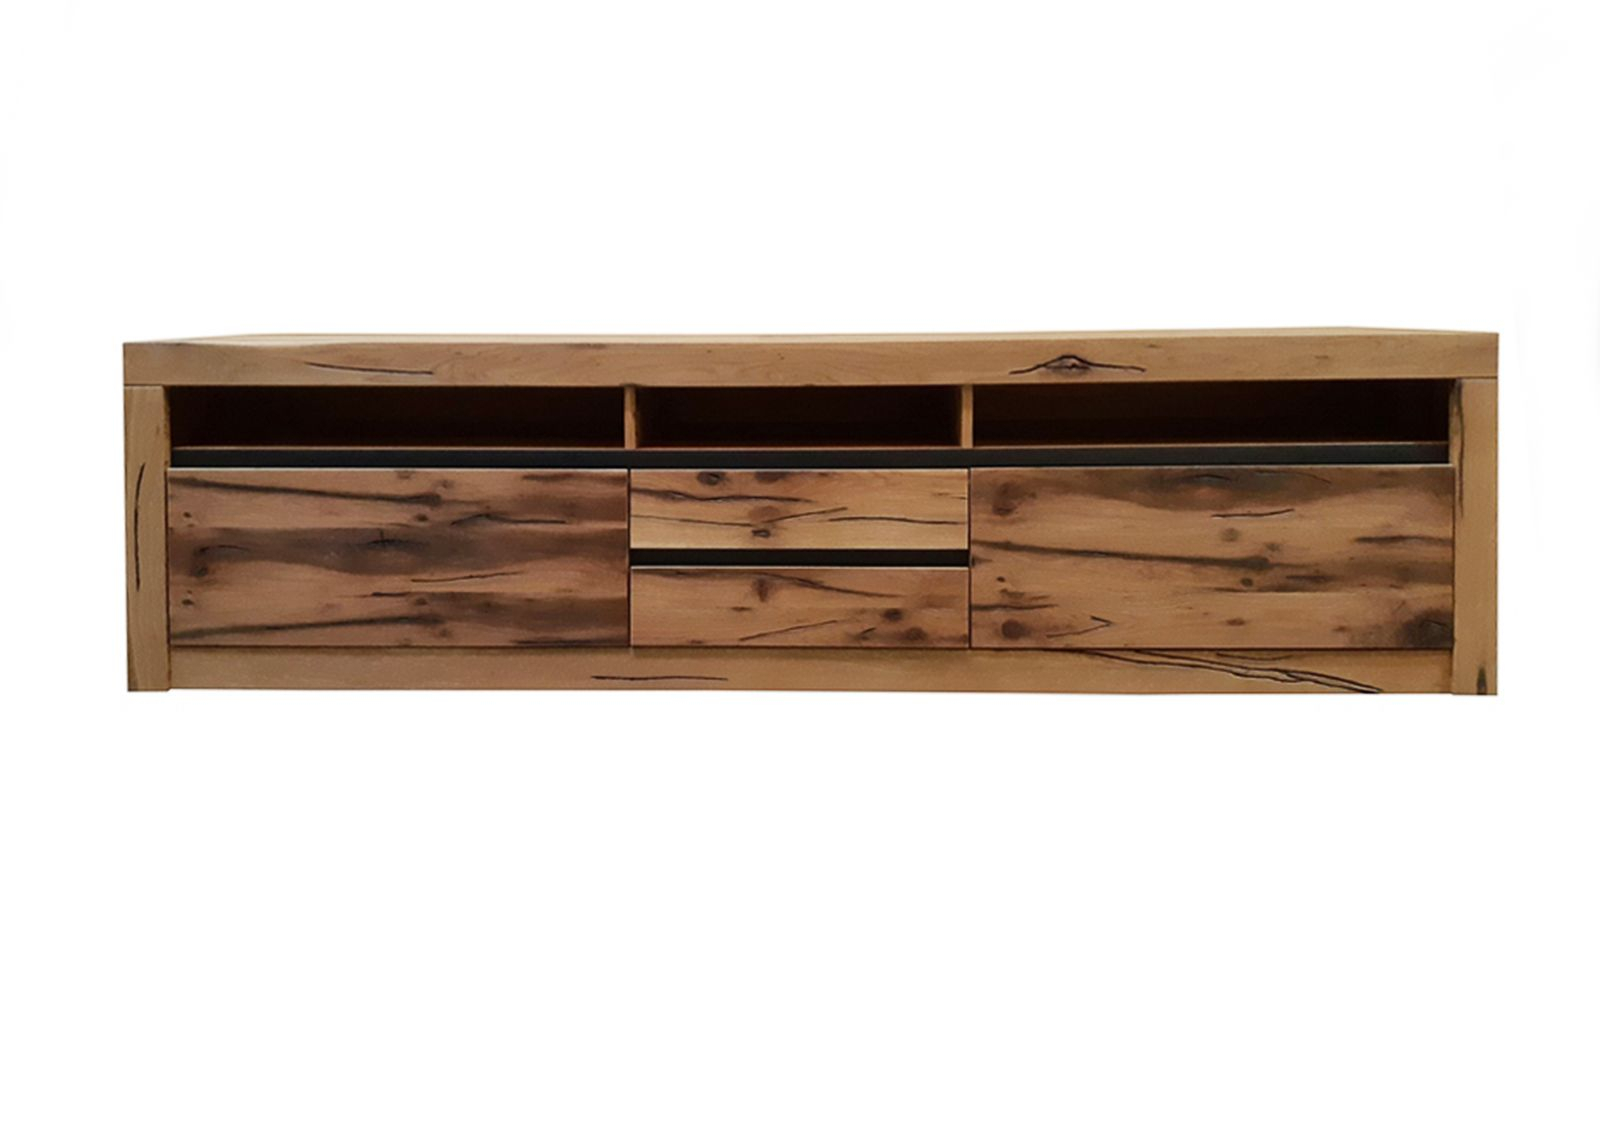 Tv Lowboard Sideboard Tv Board Wildeiche 220X50X55 Natur Geölt Montreux #040 Modern Pertaining To 2017 Lola Sideboards (View 20 of 20)